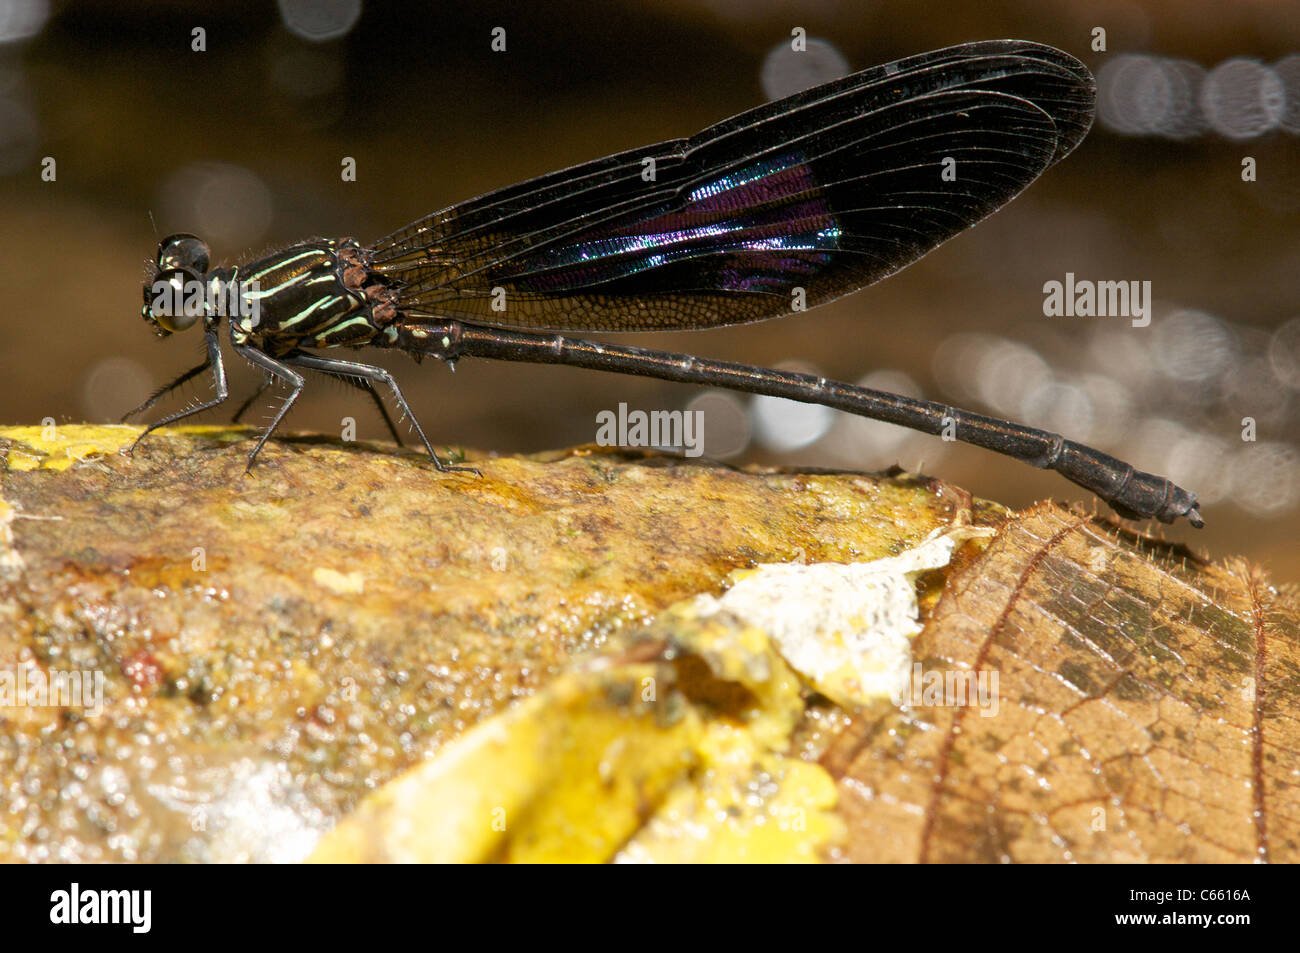 Sumatran endemic damsefly, in its rainforest habitat - Stock Image